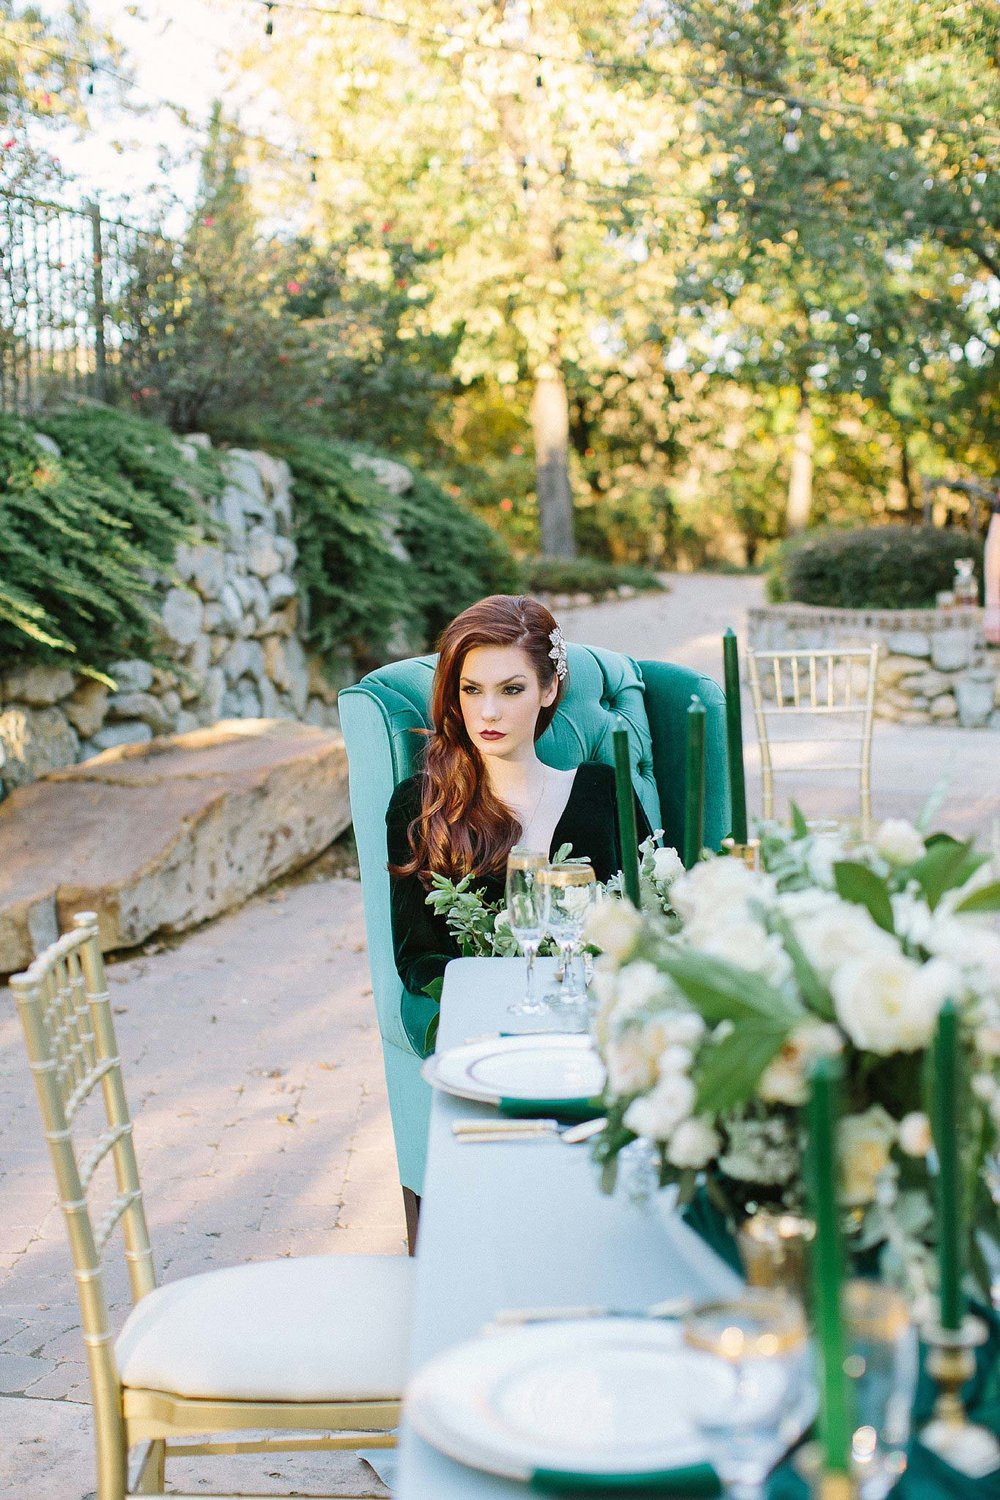 aristide mansfield wedding bride with red hair sitting at the end of the table